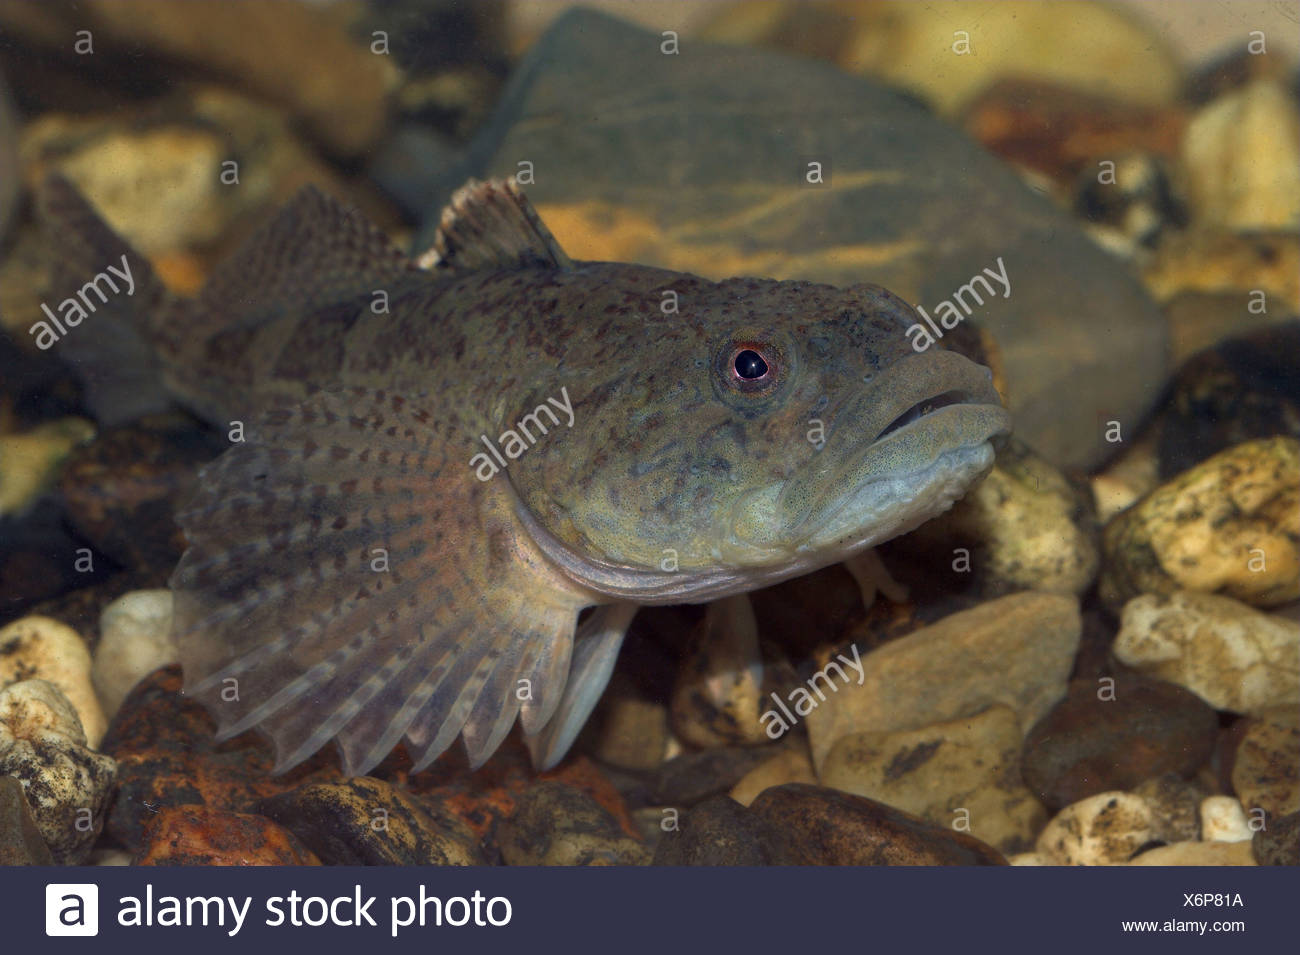 Bullhead, photographed in an aquarium - Stock Image